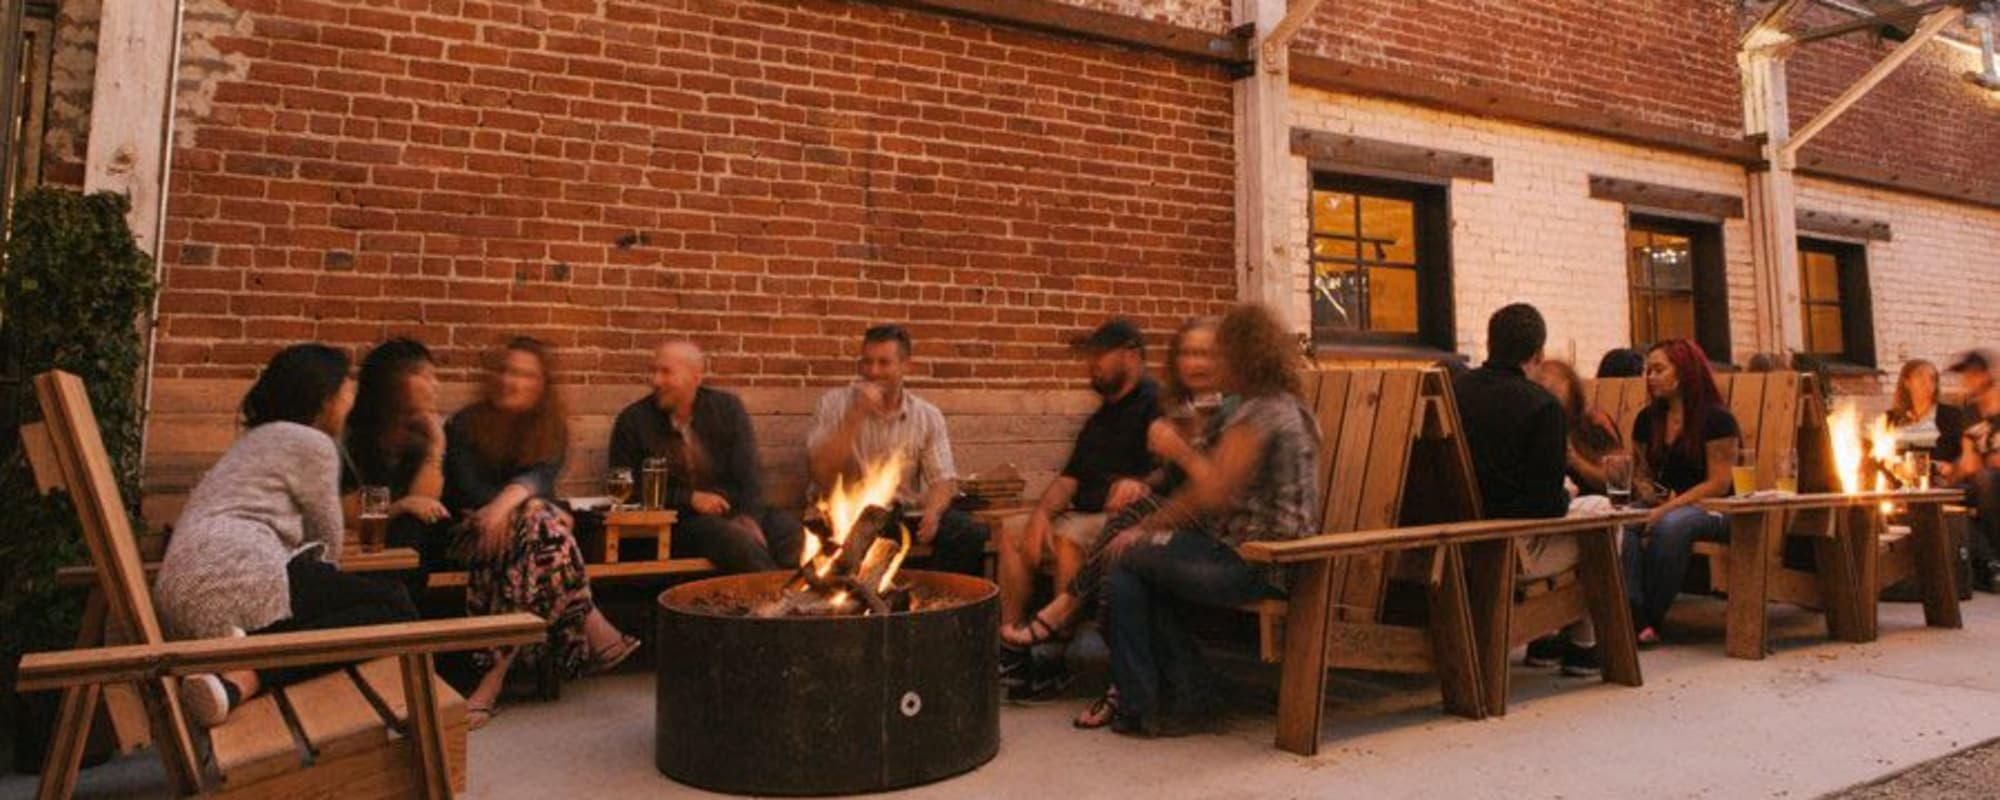 Outdoor patio seating near The Moran in Oakland, California